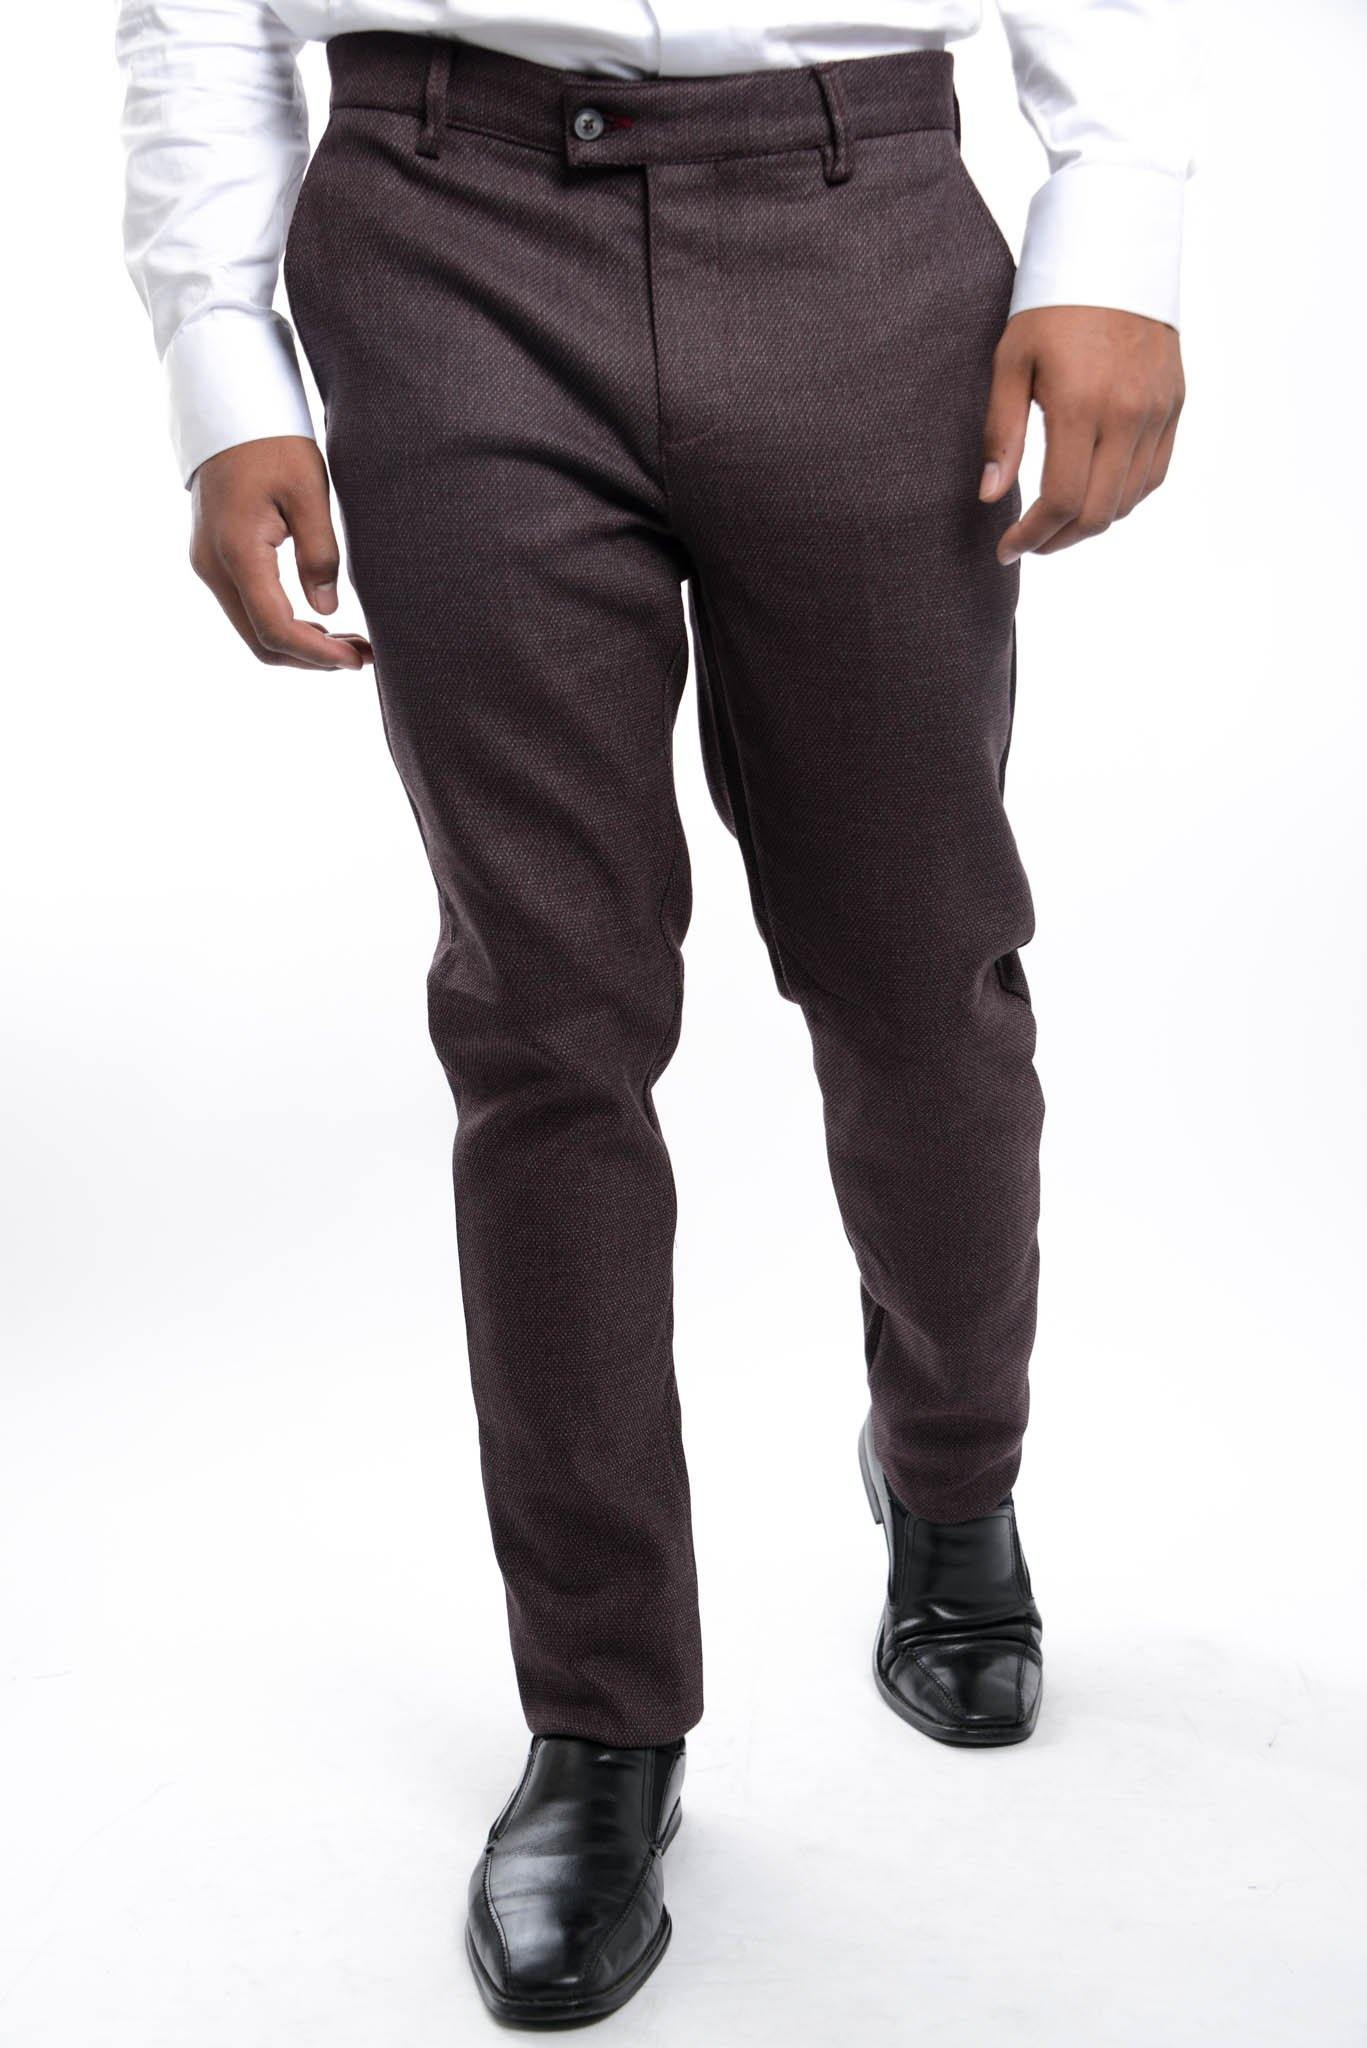 Euro Heathered Pique Trouser - Haight & Ashbury